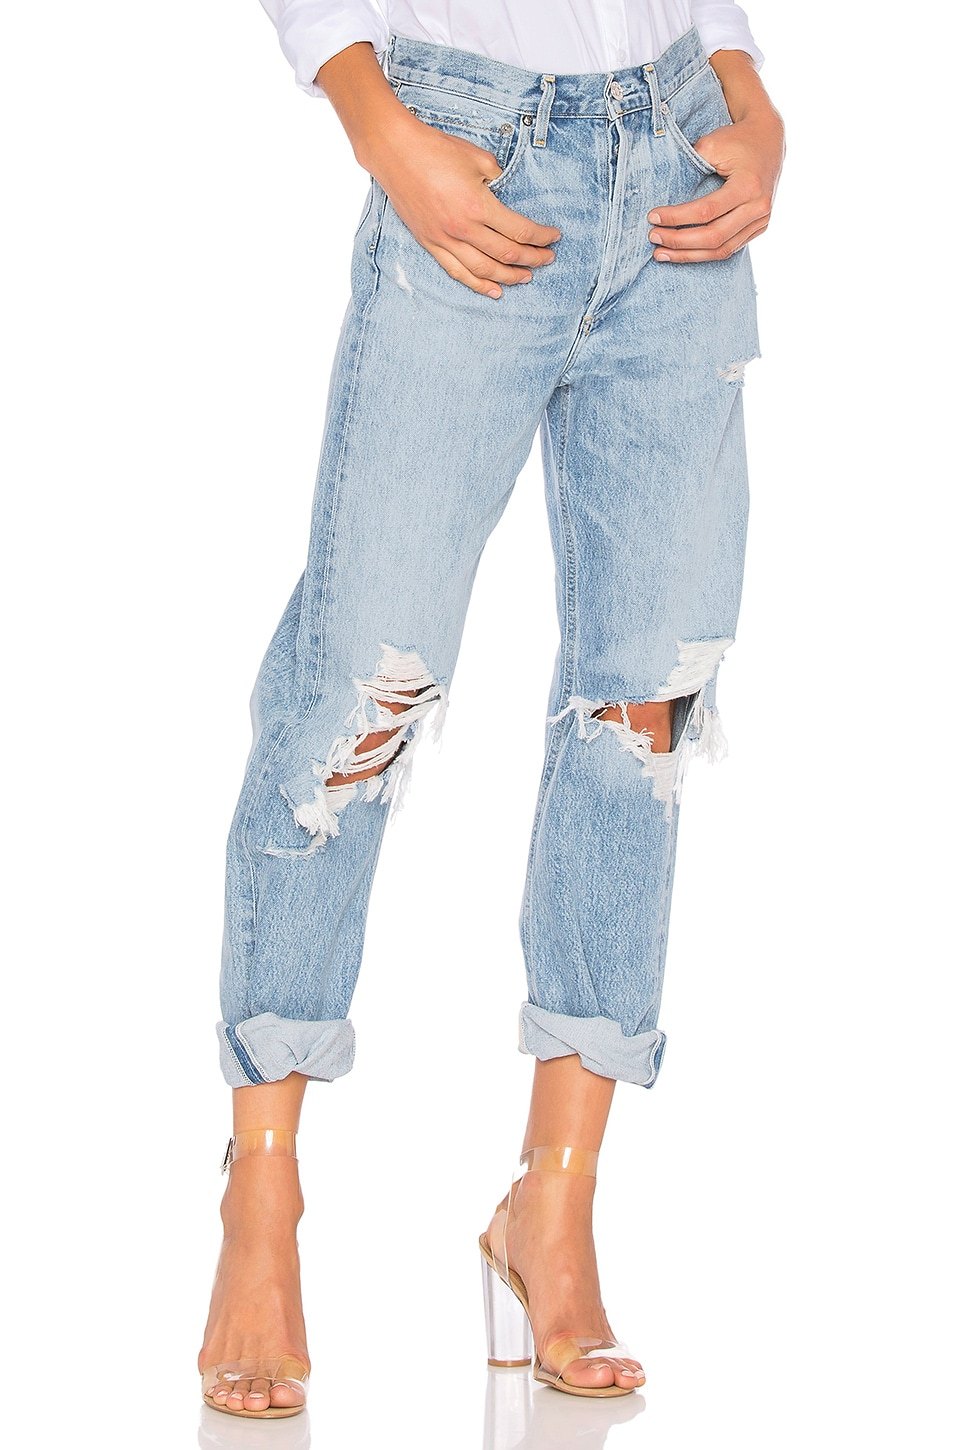 90s High Rise Loose Fit             AGOLDE                                                                                                       CA$ 249.97 2